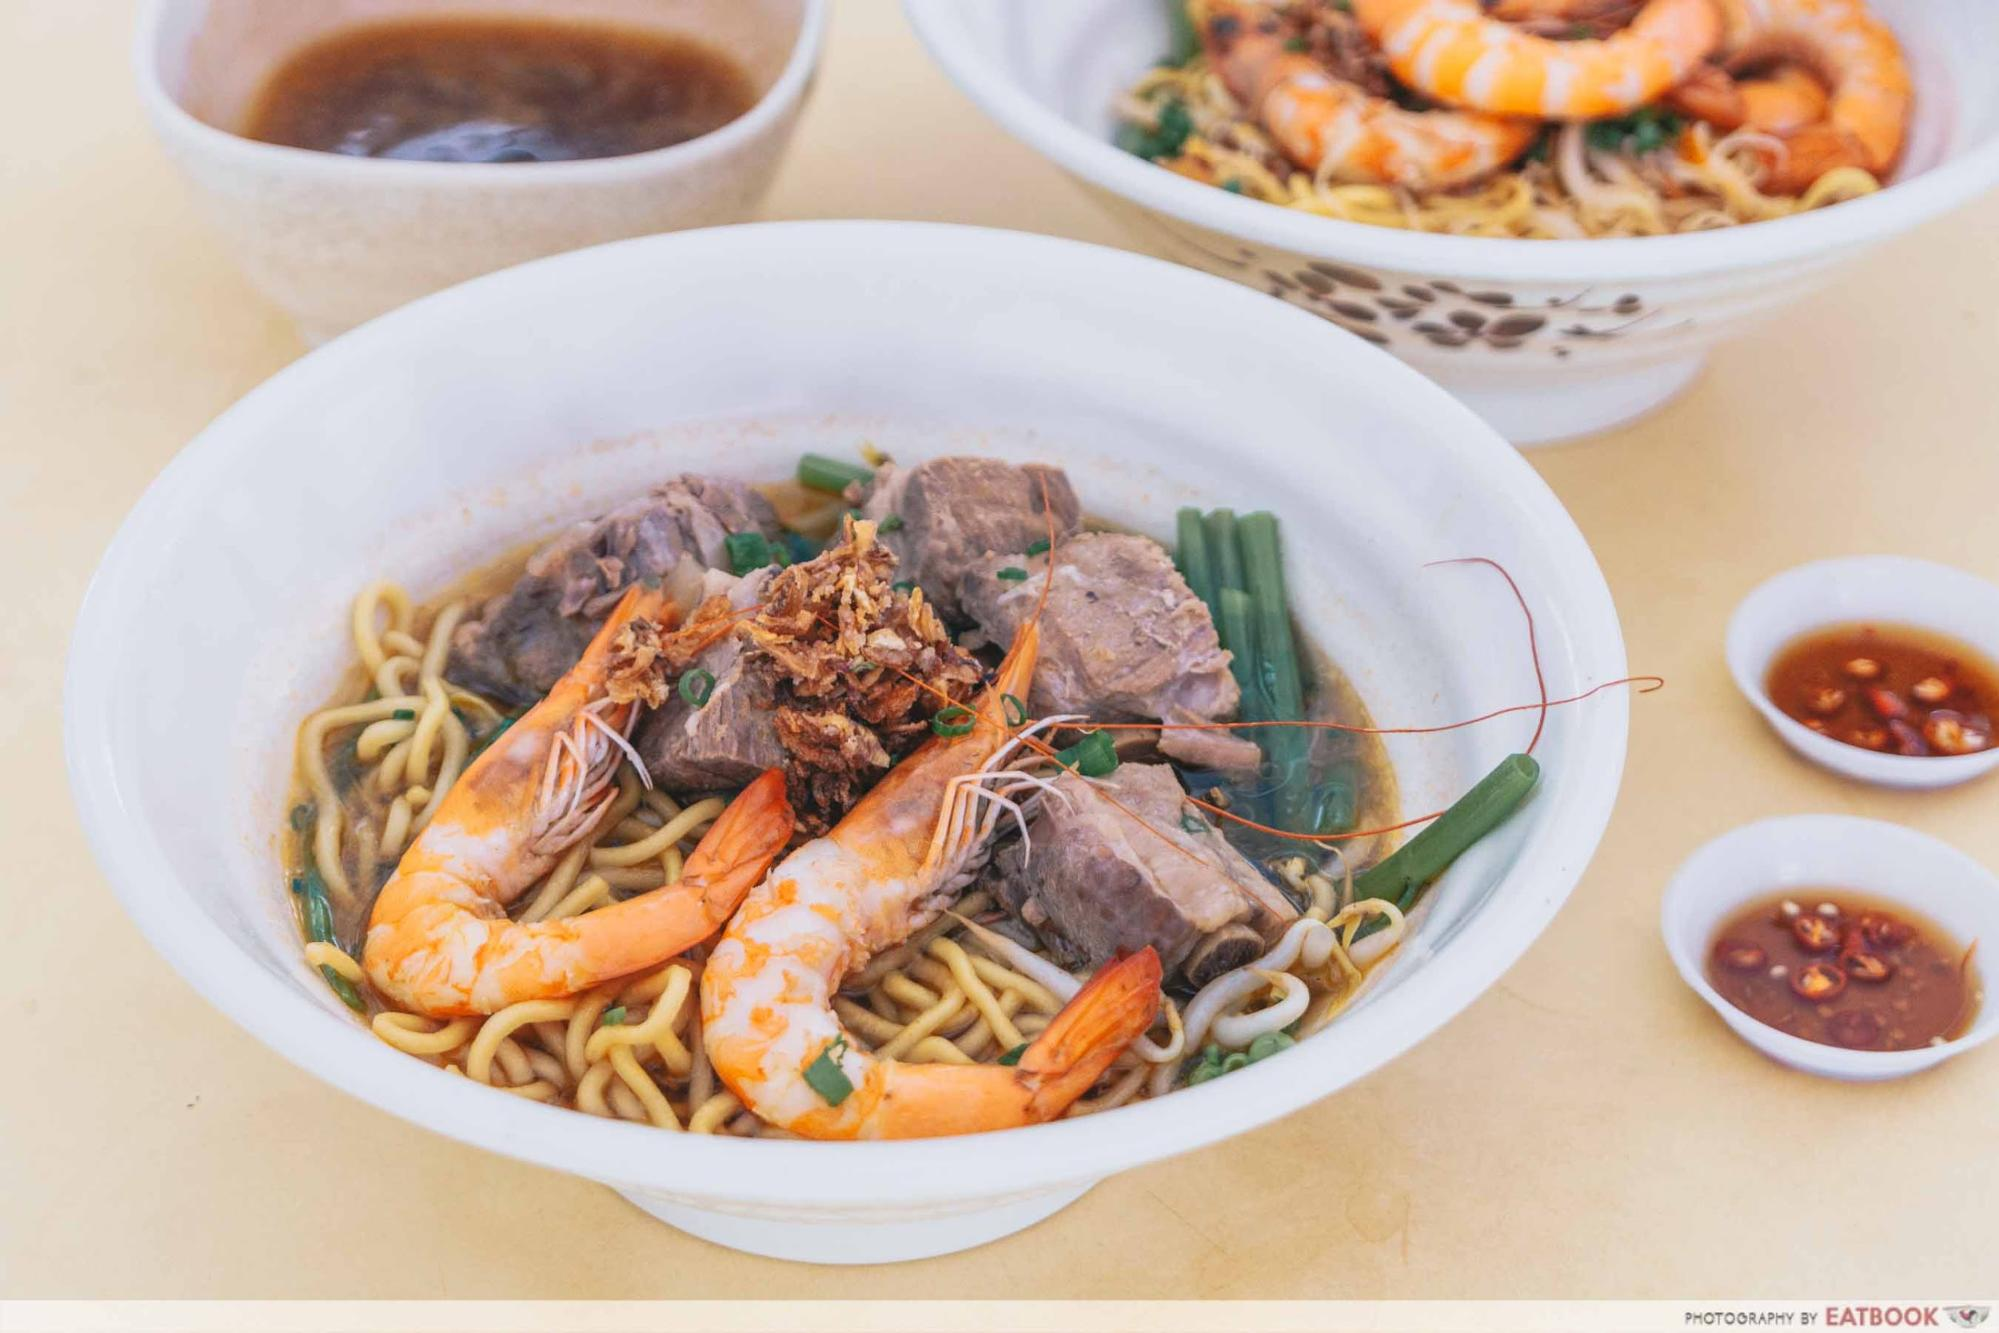 Prawn & Mee pork ribs and prawn noodles